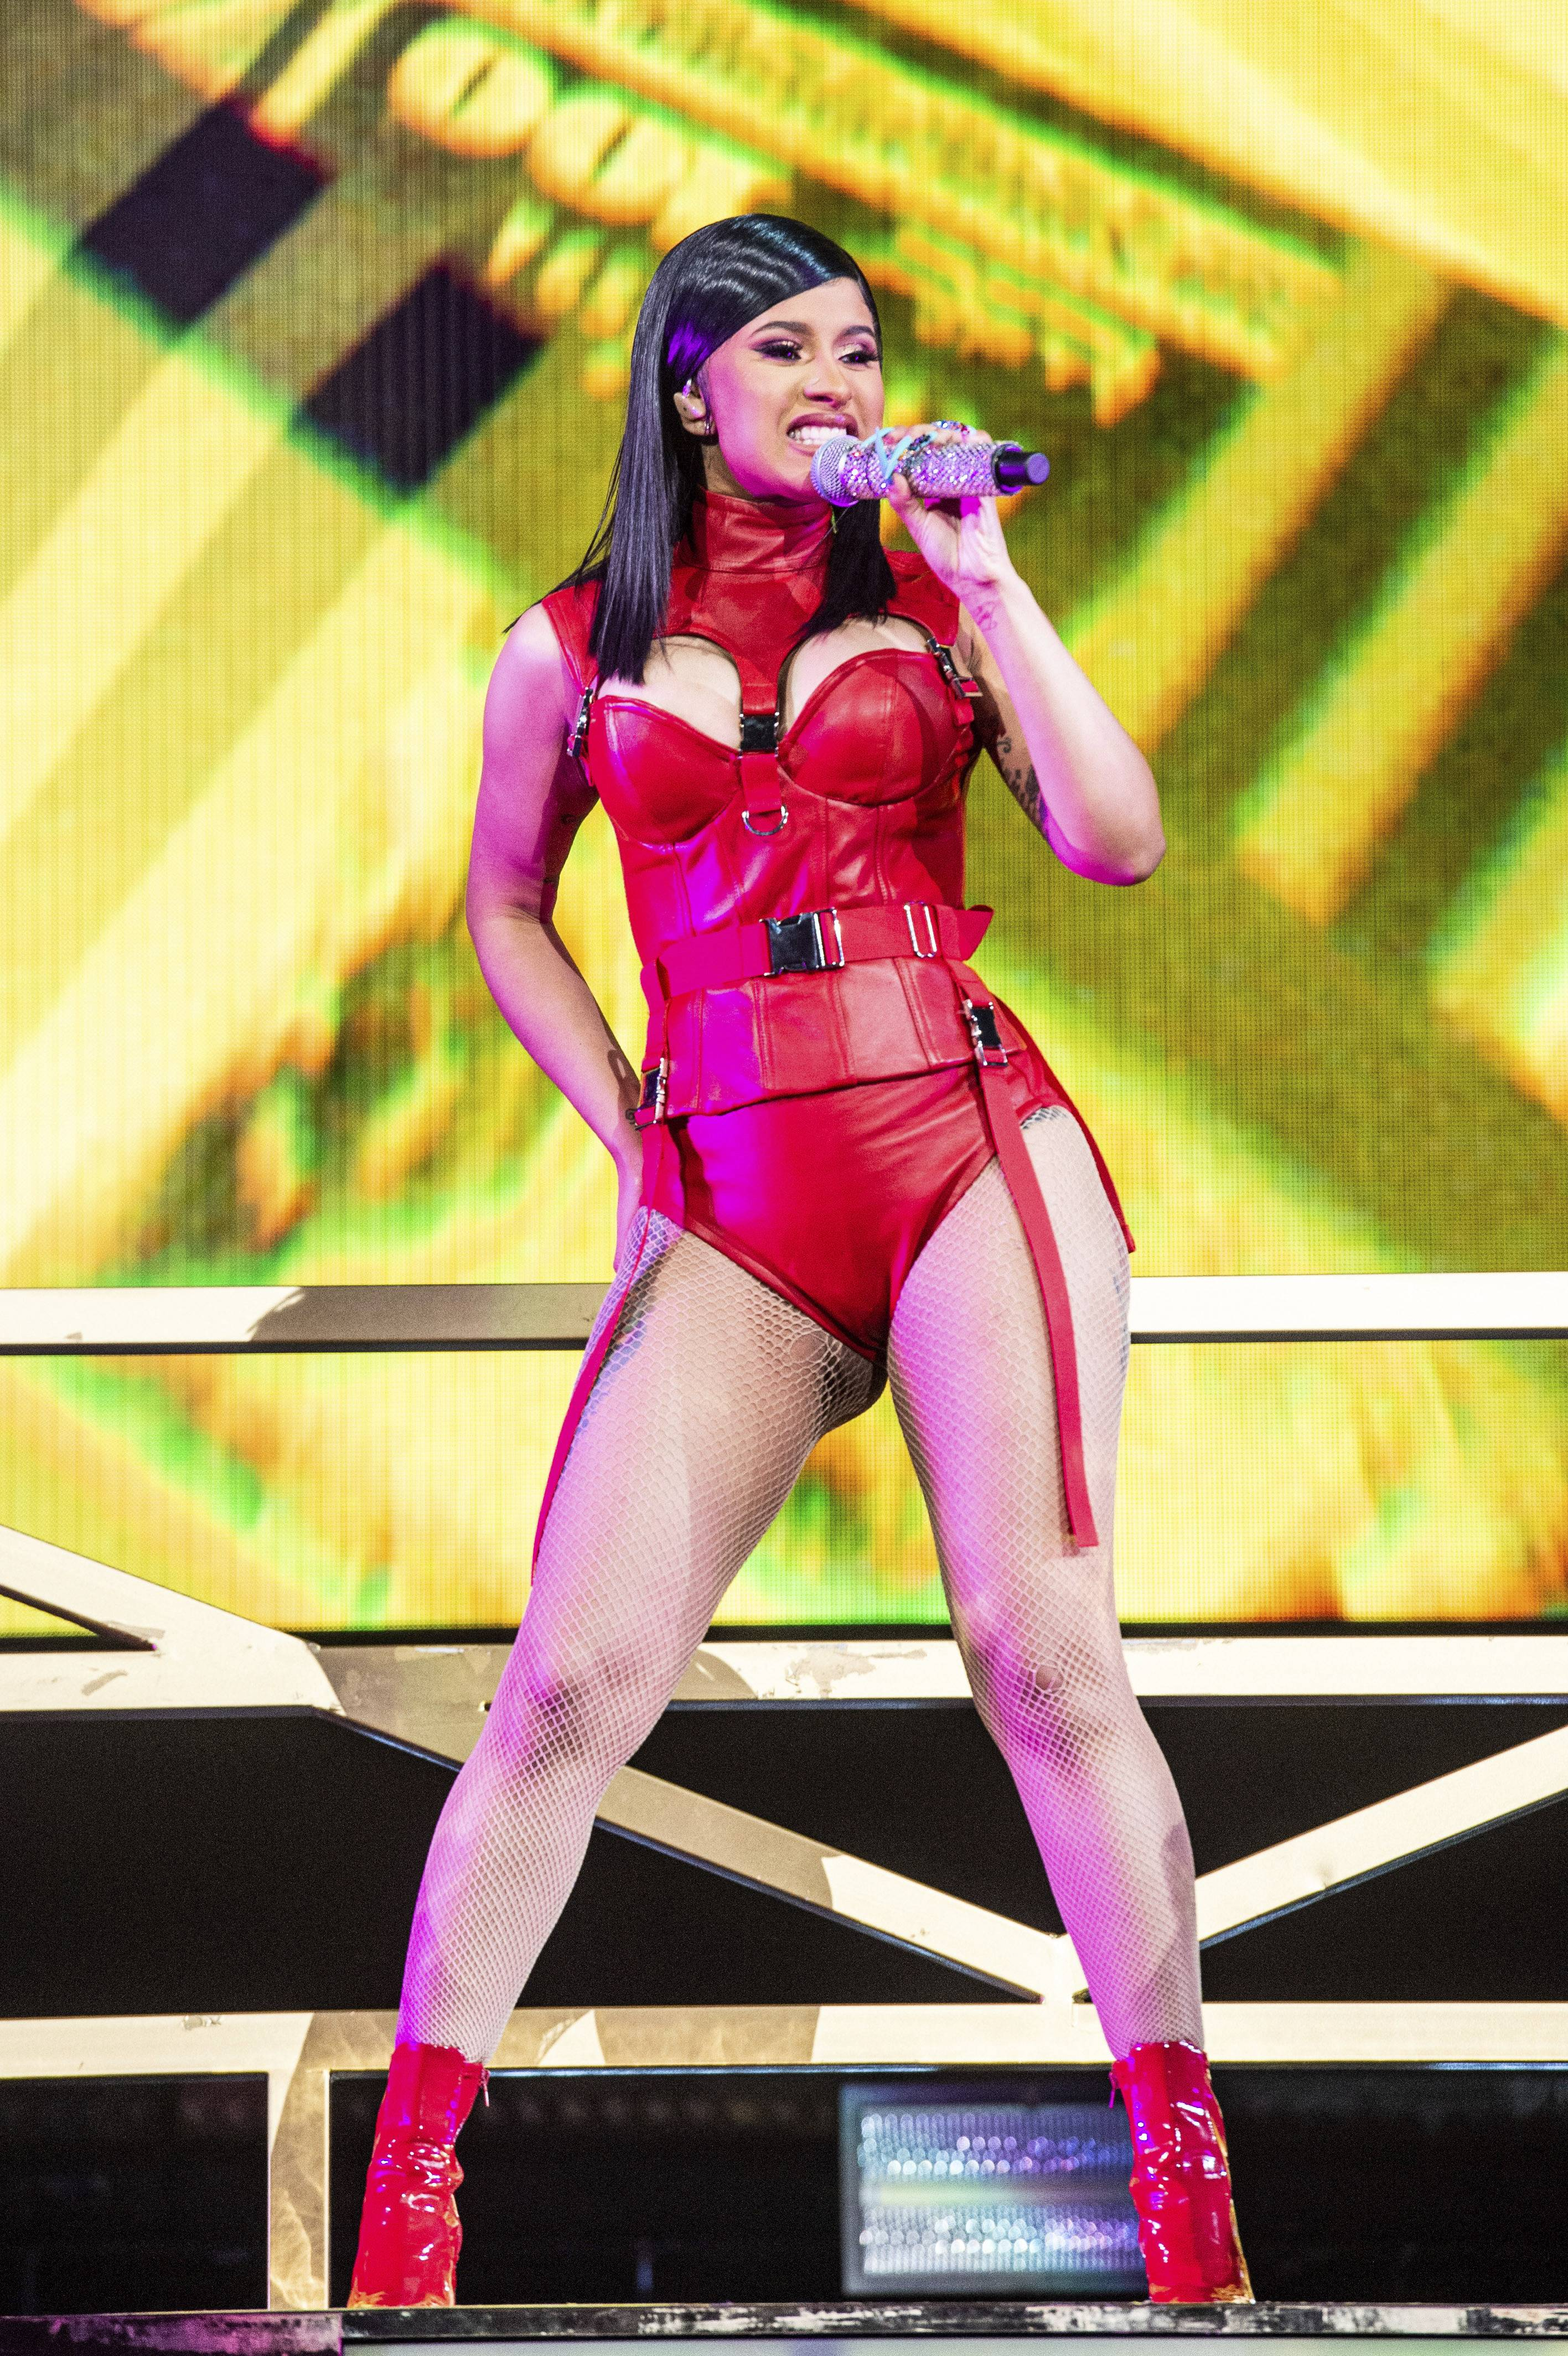 Red Barz - Cardi B came through drippin on the Indianopolis stage. She struted her staff and showcase her curves in a red, leather corset! (Photo: AP)